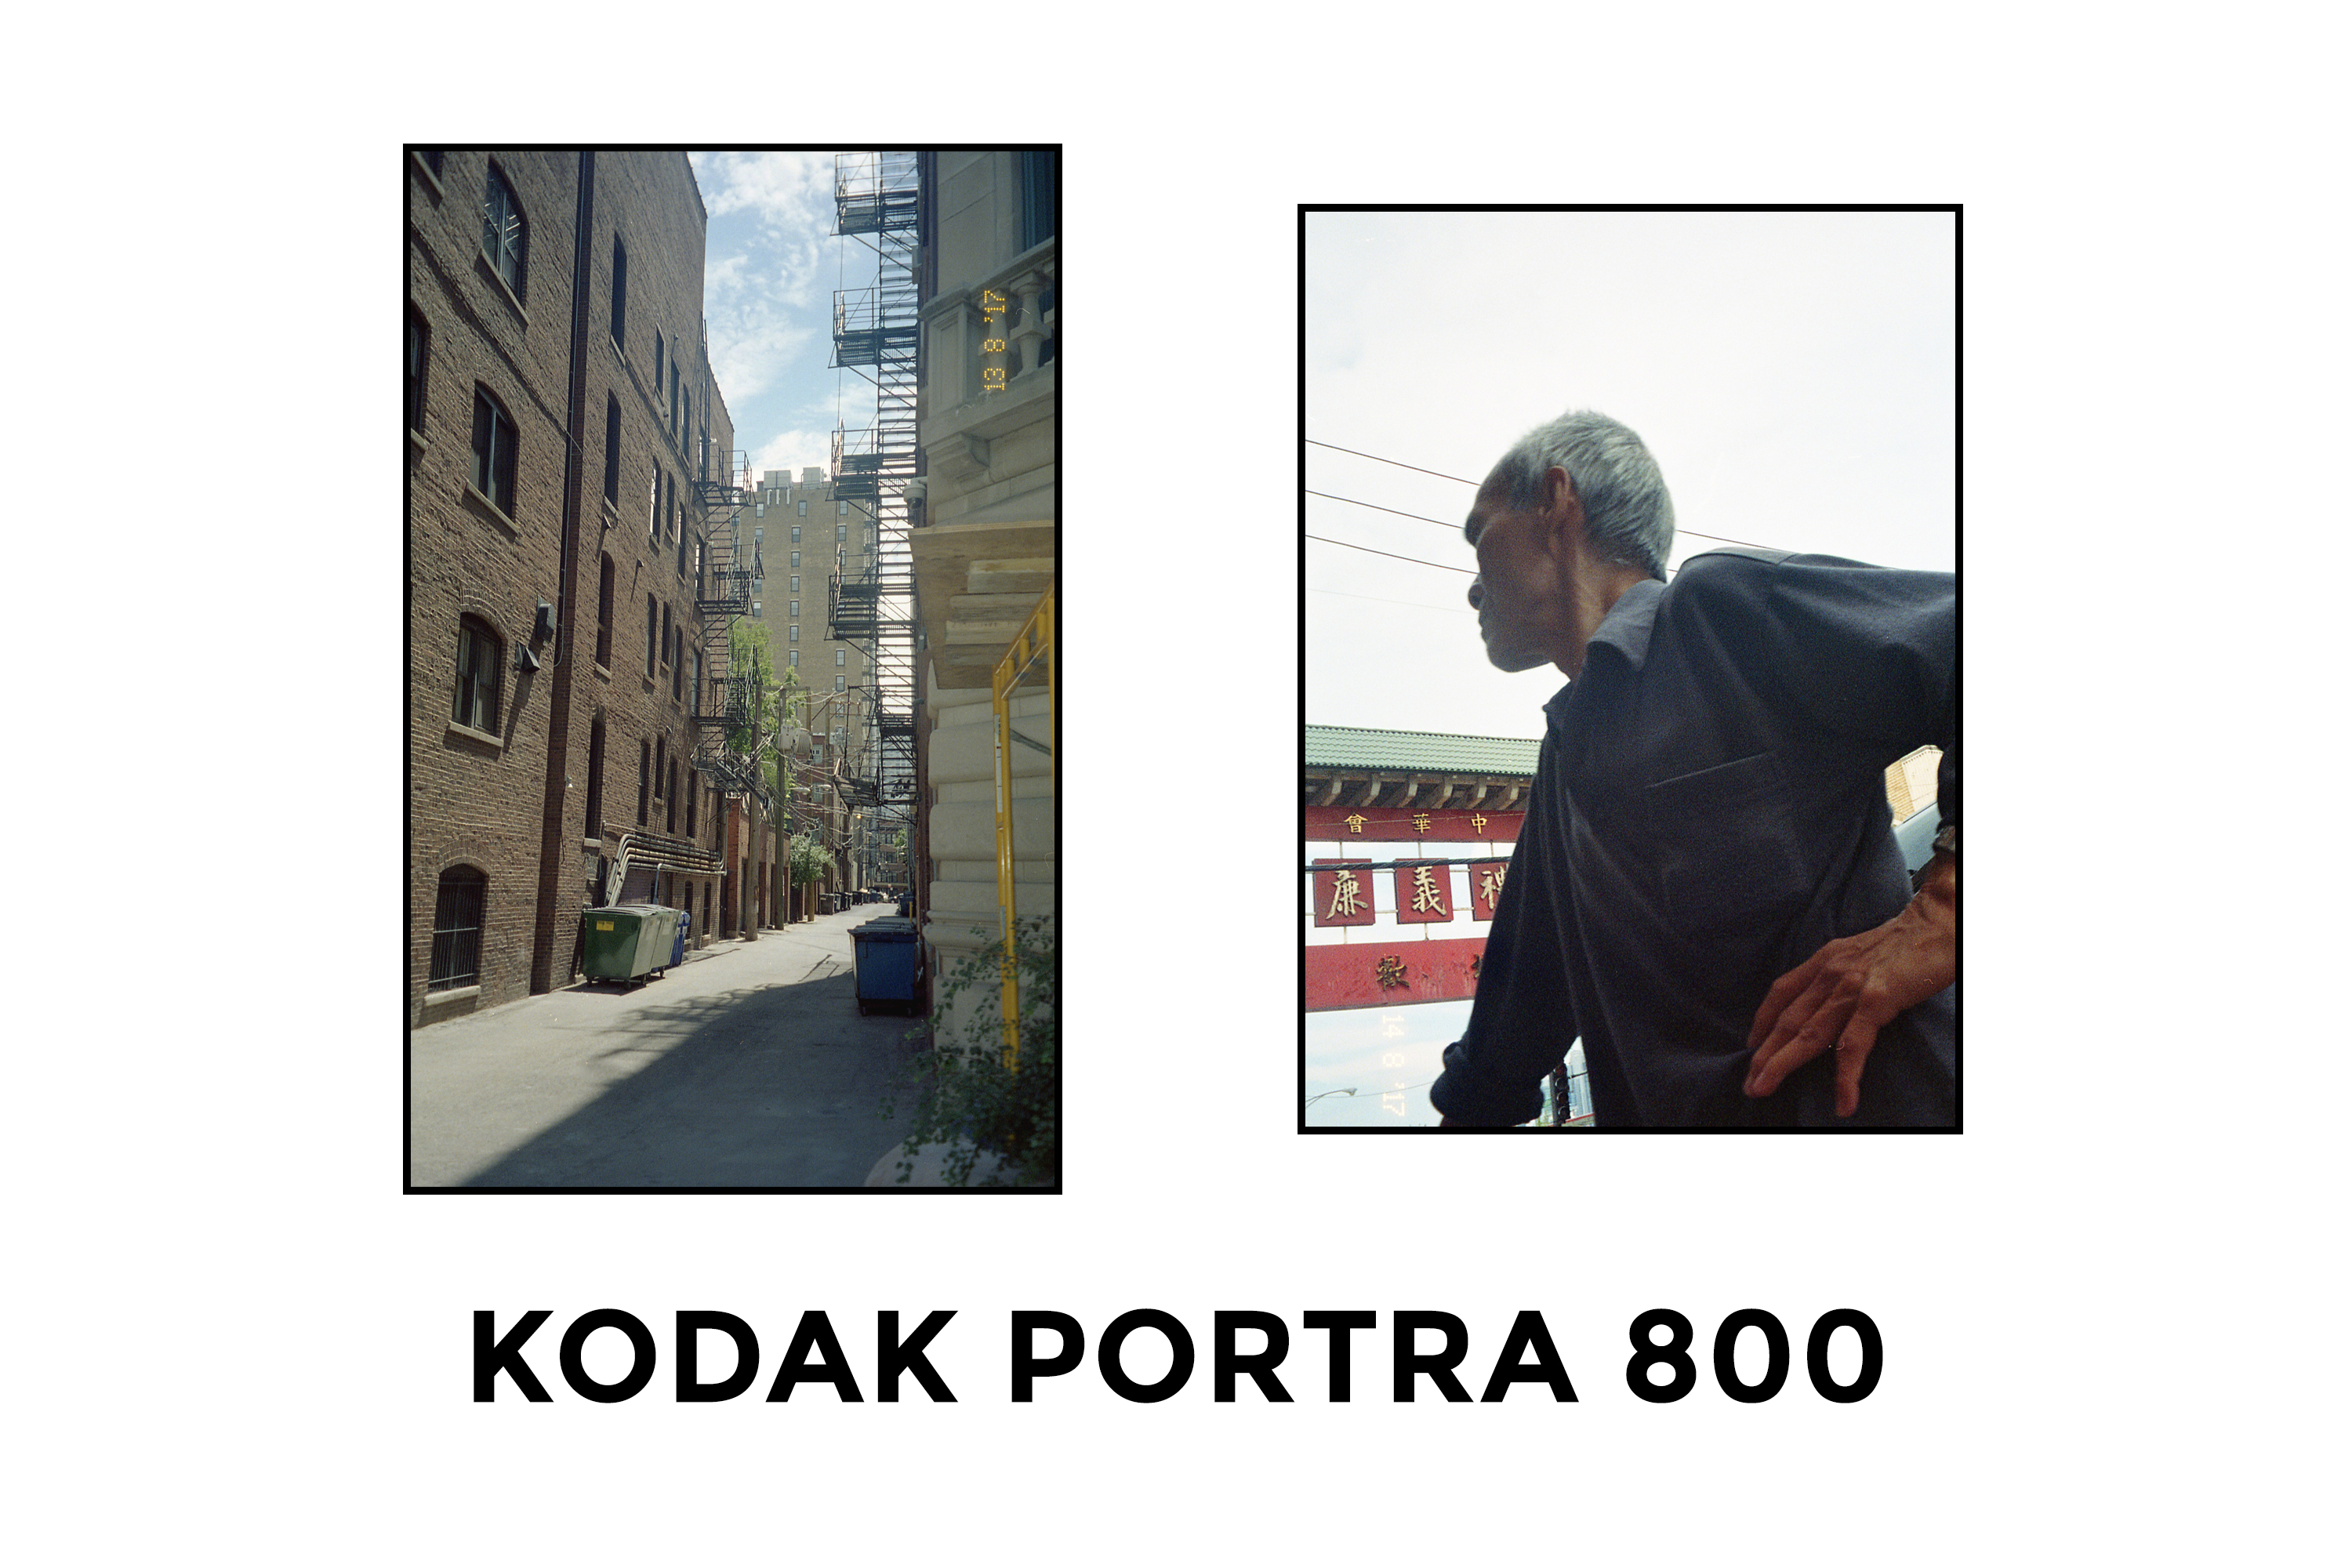 Kodak Portra 800 - Fuji Superia 800 vs. Kodak Portra 800 Film Stock Review - FilterGrade Blog